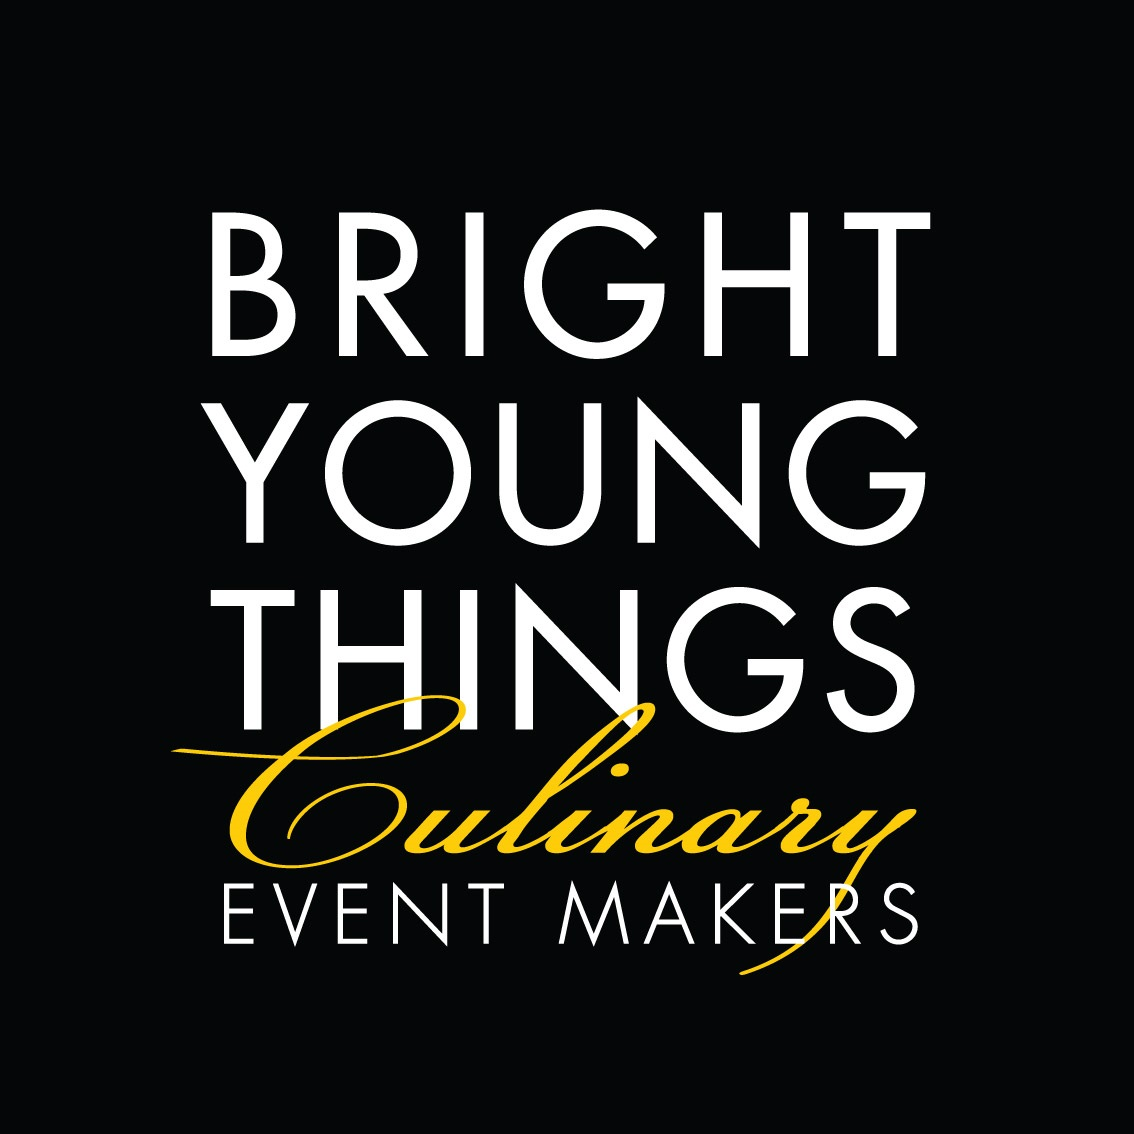 Bright Young Things Event Makers